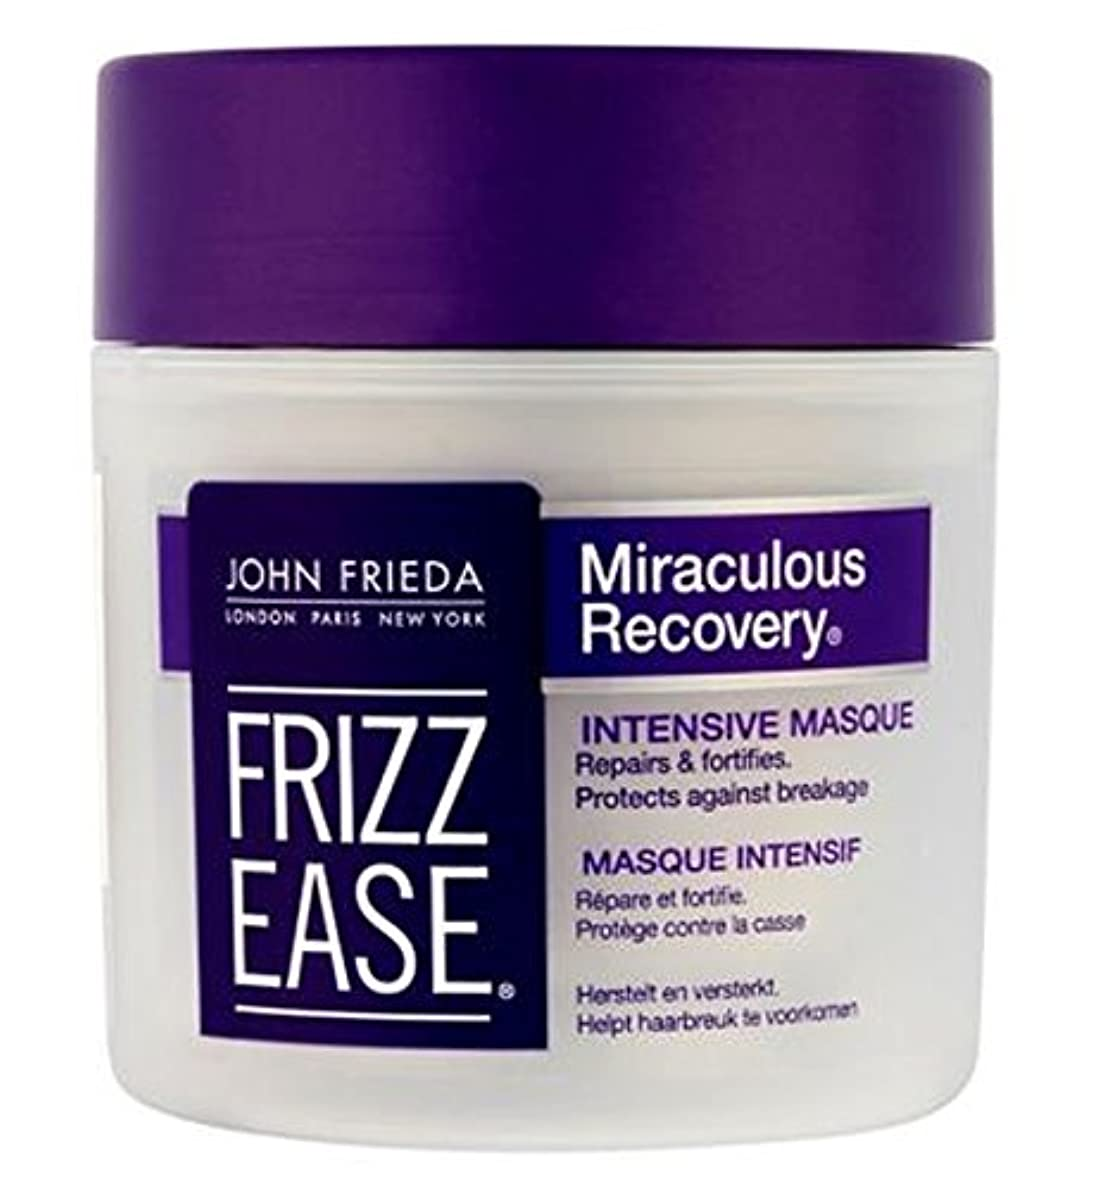 John Frieda Frizz-Ease Miraculous Recovery Intensive Masque 150ml - ジョン?フリーダの縮れ-容易奇跡的な回復集中的な仮面劇の150ミリリットル (John...